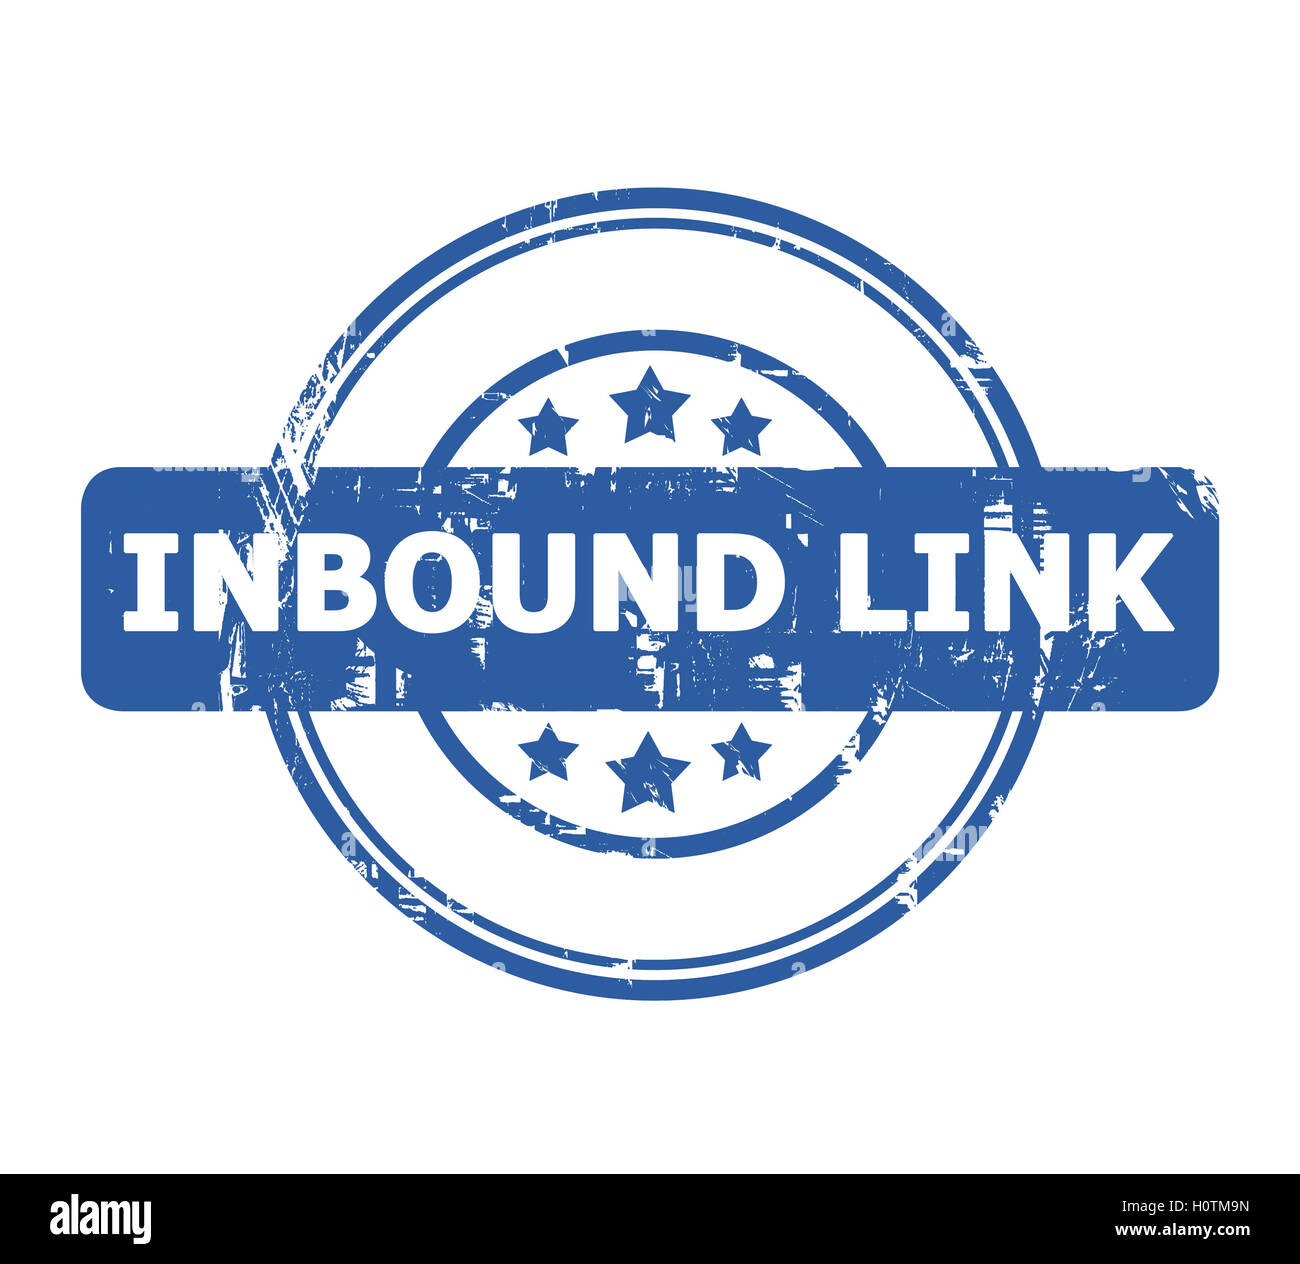 Inbound Link Stamp with stars isolated on a white background. - Stock Image